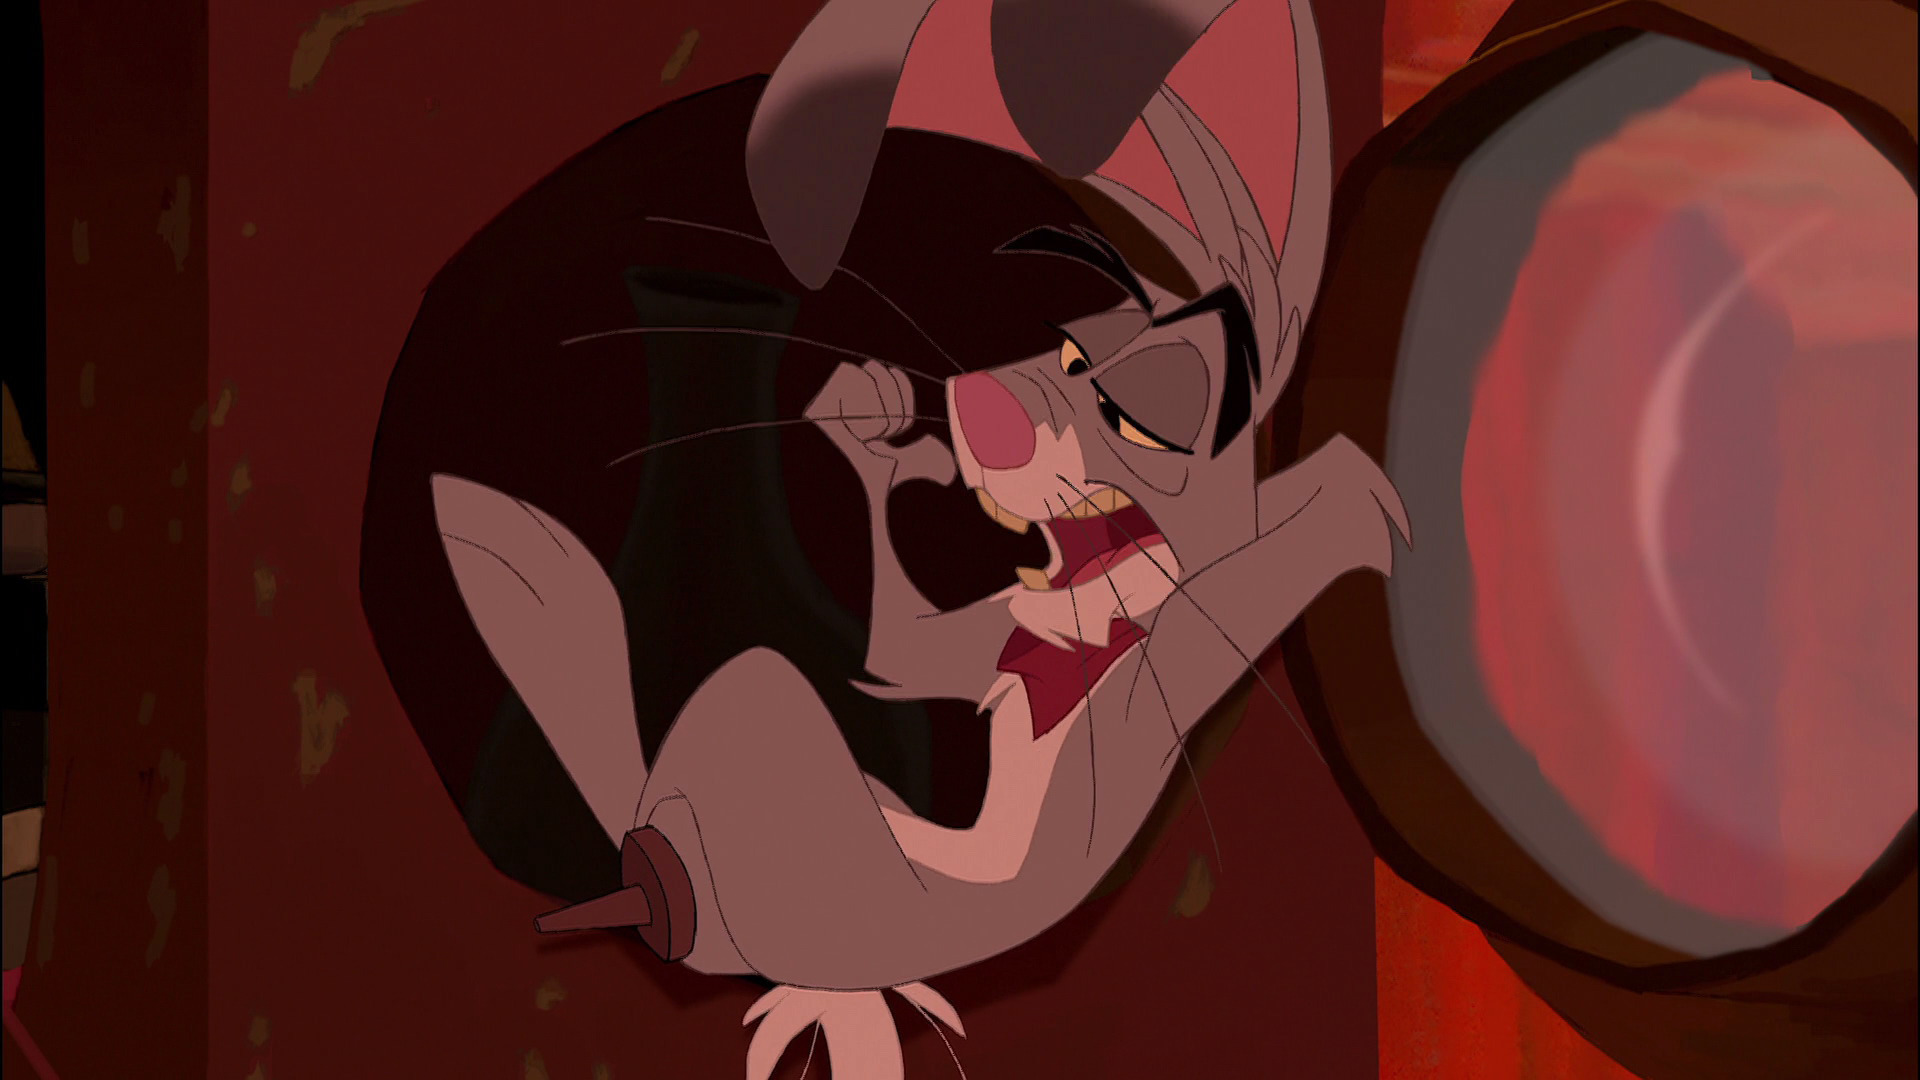 Home-on-the-range-disneyscreencaps Com-7301.jpg